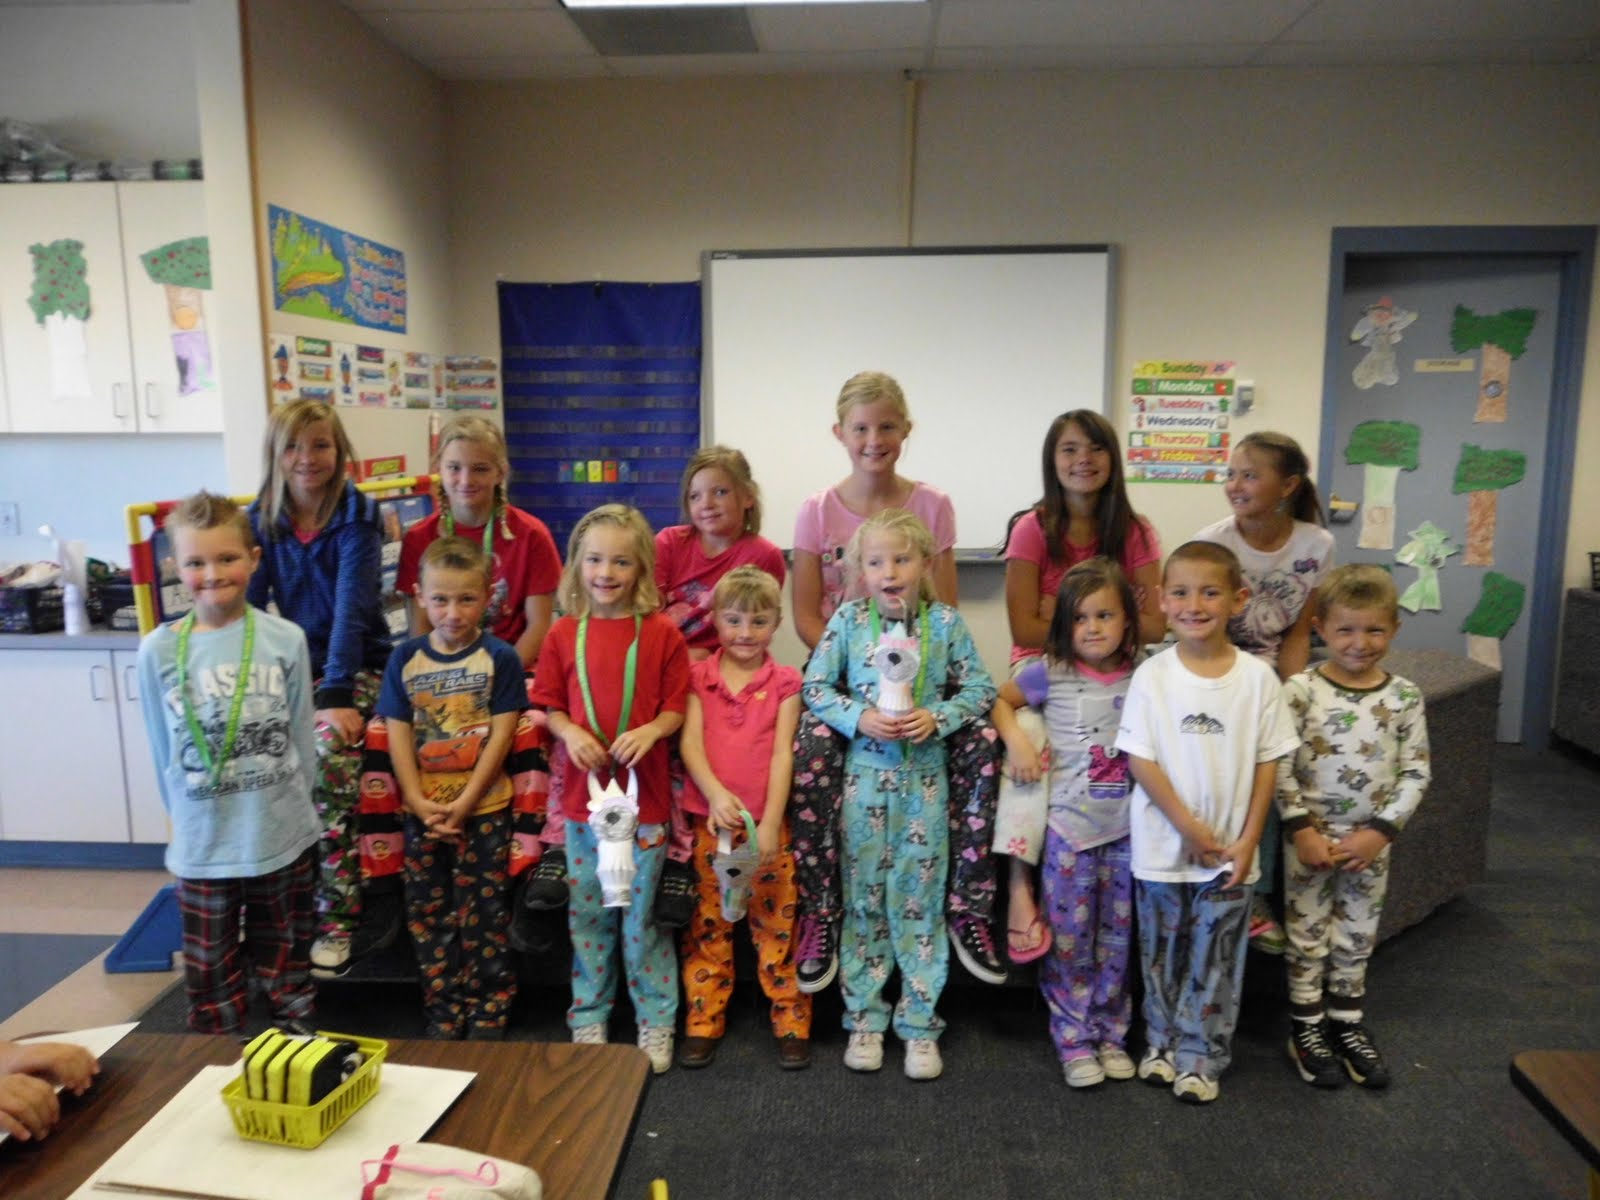 Kinder Garden: #1 Kindergarten: Pajama Party